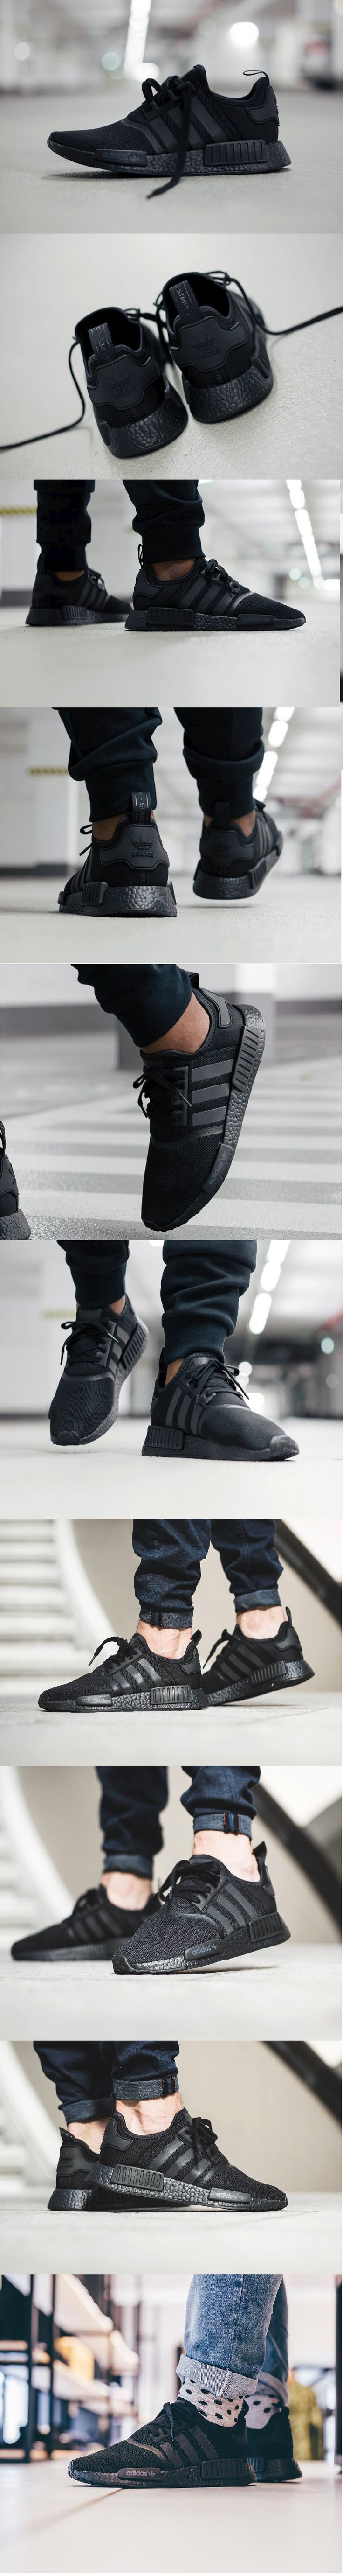 #Adidas #NMD_R1 '#Blackout'